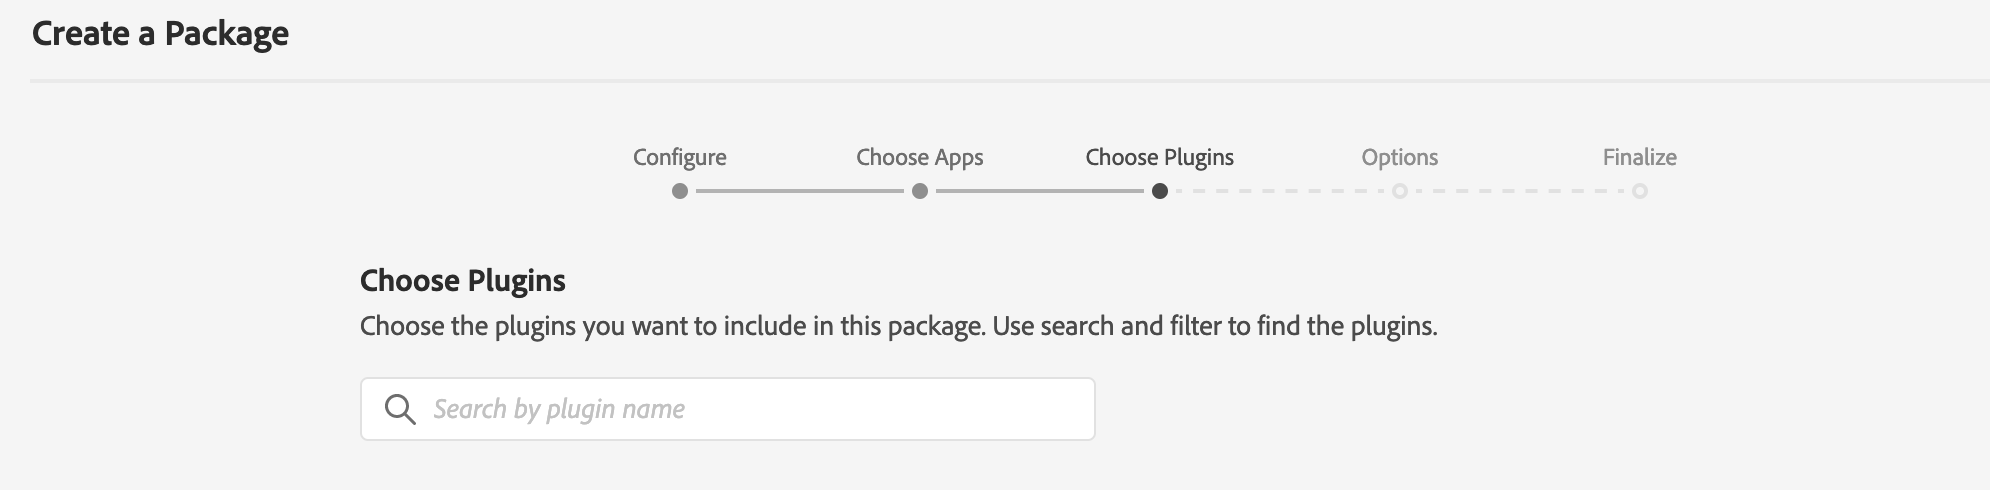 Adobe Admin Console - Create a Package - Package plugin selection